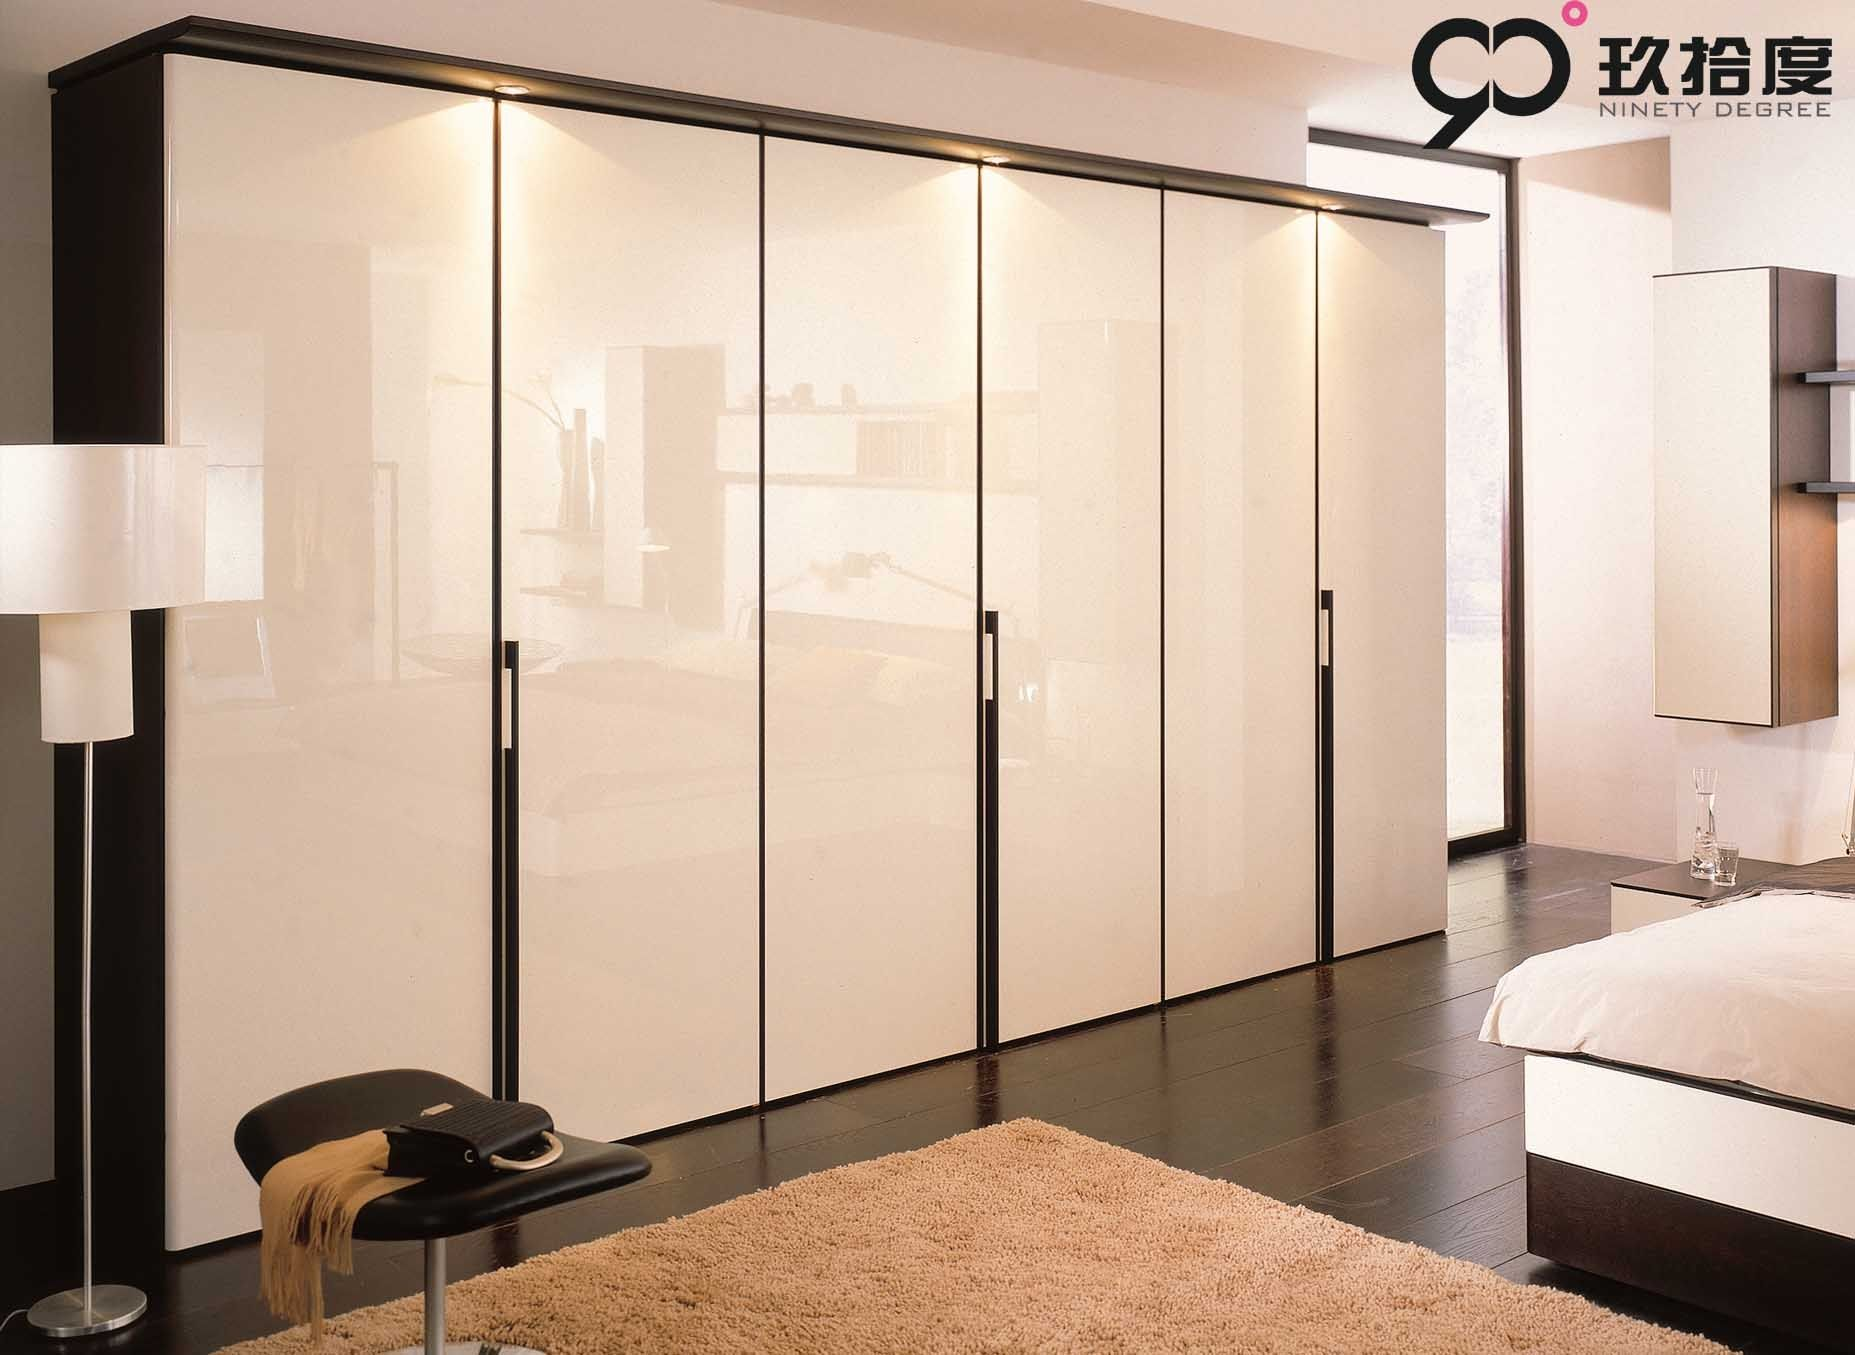 Bedroom lavish white high gloss wardrobe design polished for Contemporary wardrobe designs india